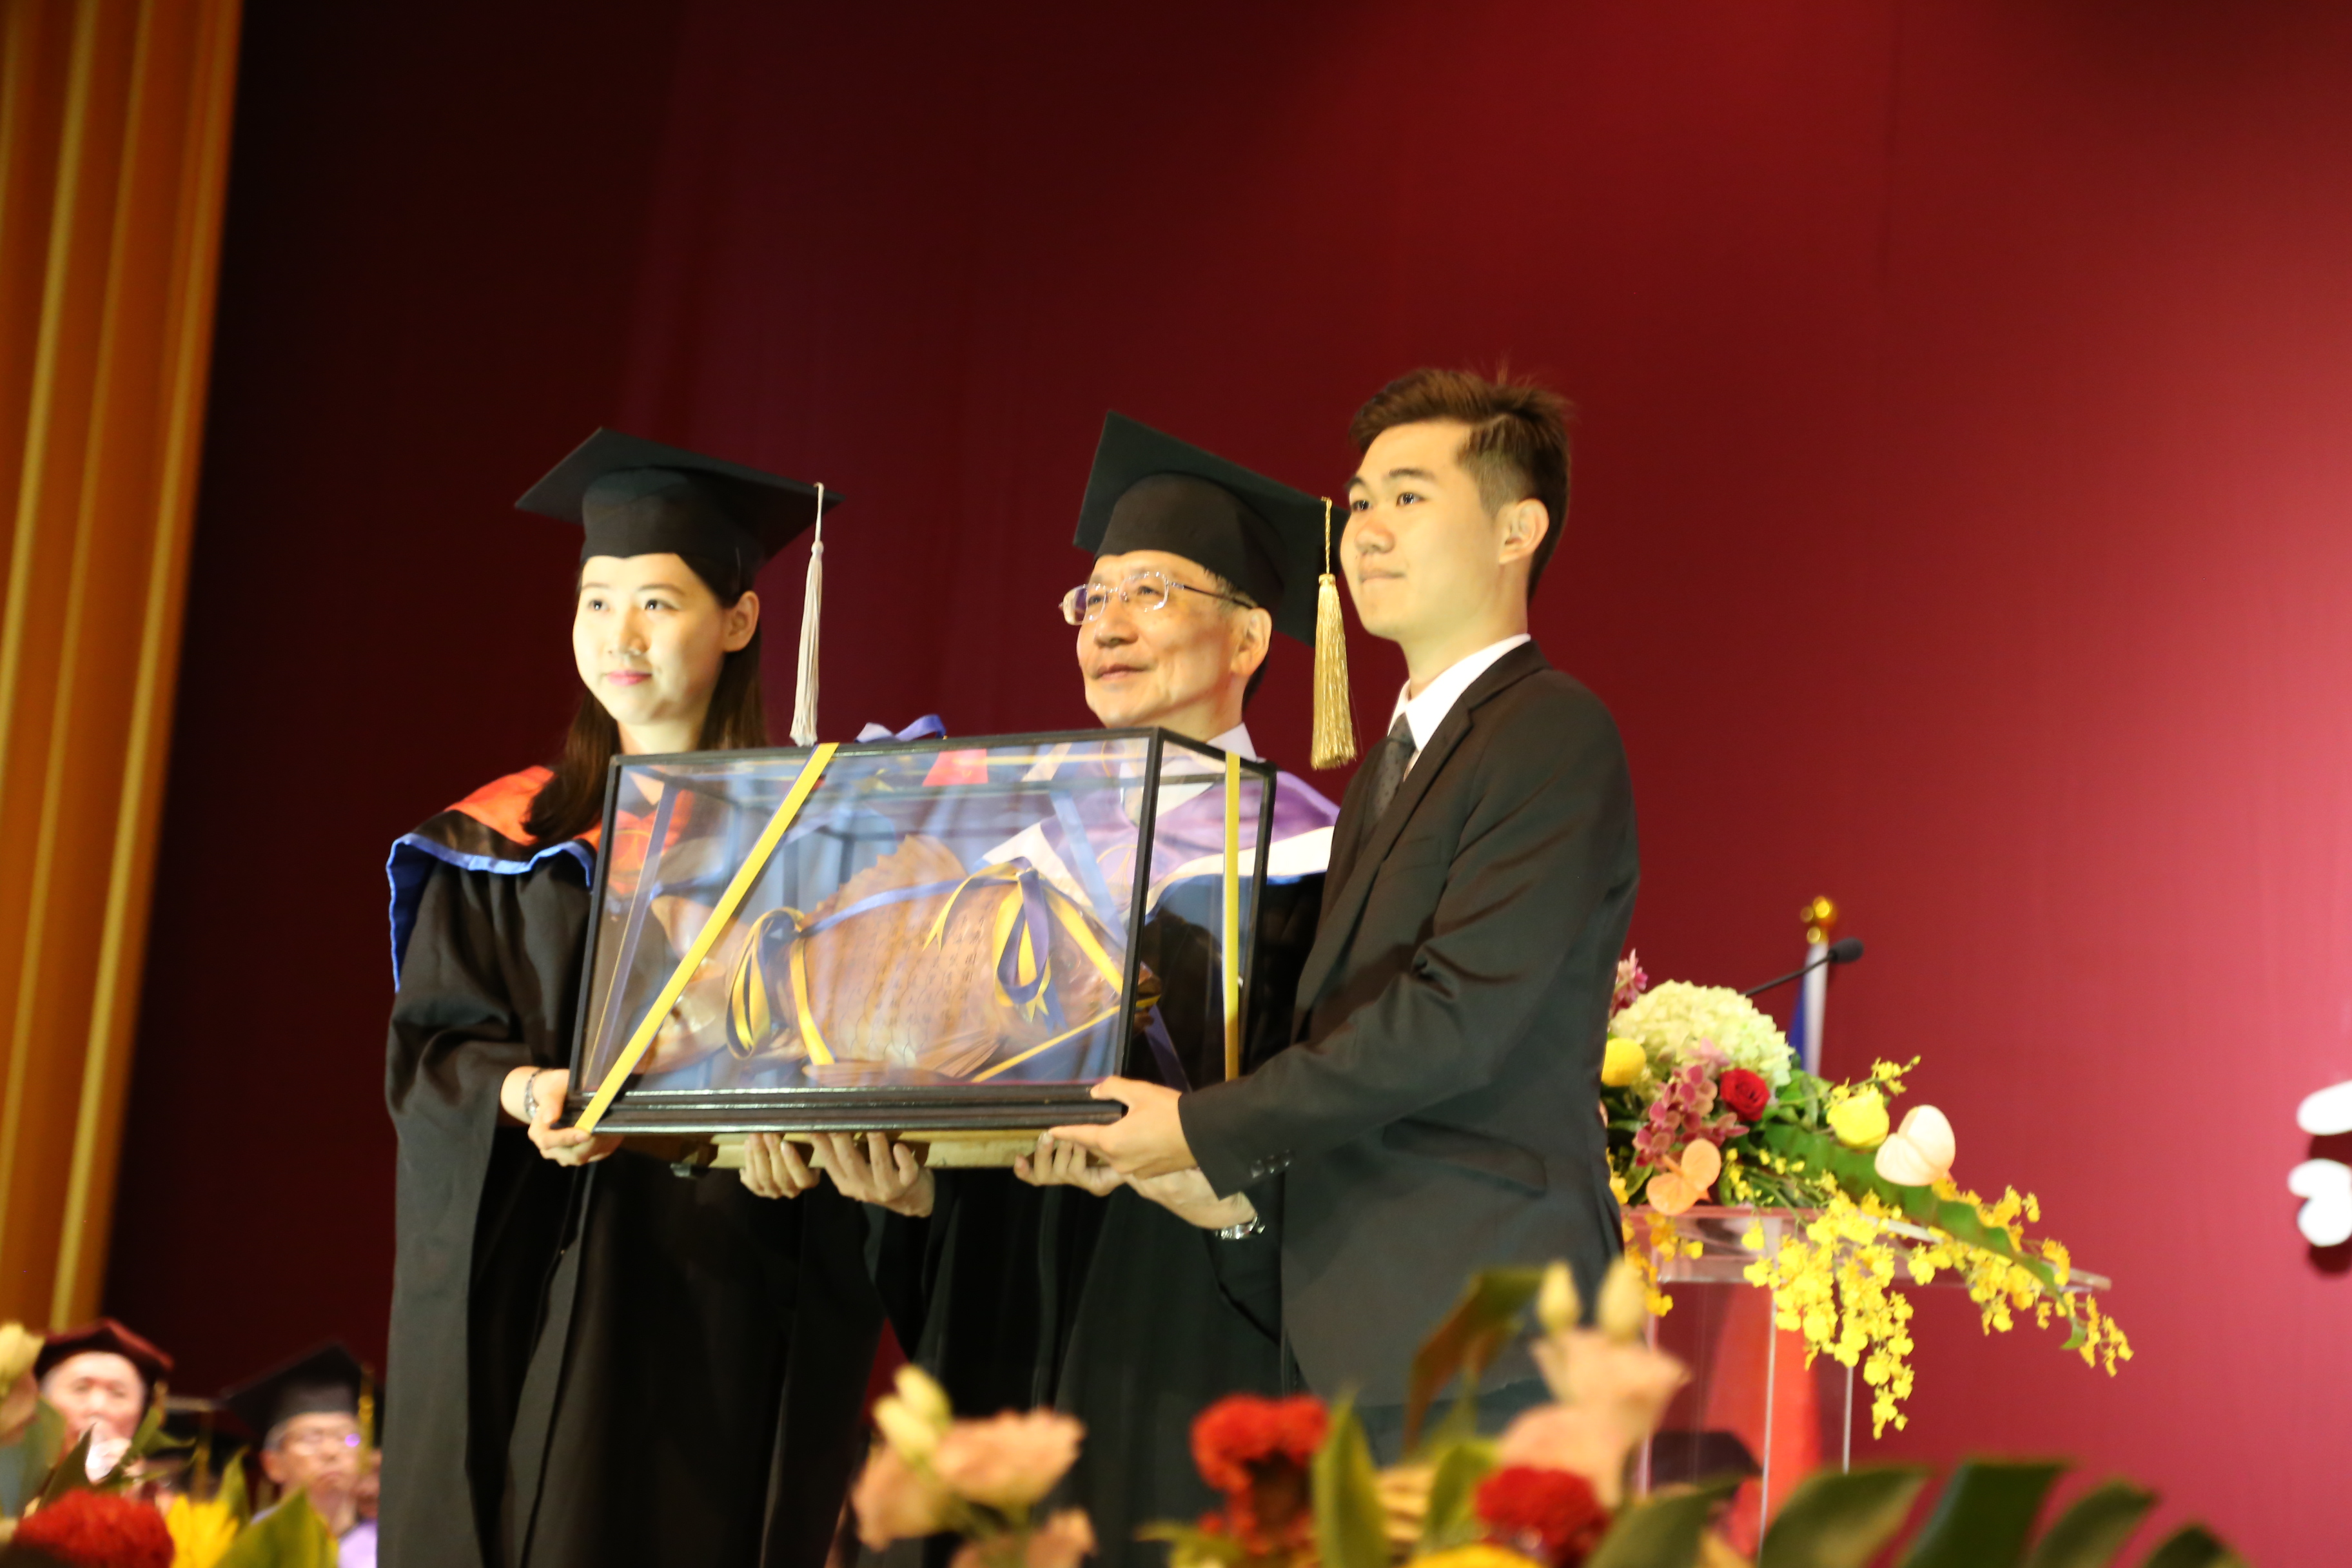 Tunghai University passed the fire in the witness of Wang Maojun, the president of the Association of Bilian, Huang Lizhen (left), who passed the wooden fish to the student president Chen Xinxiu